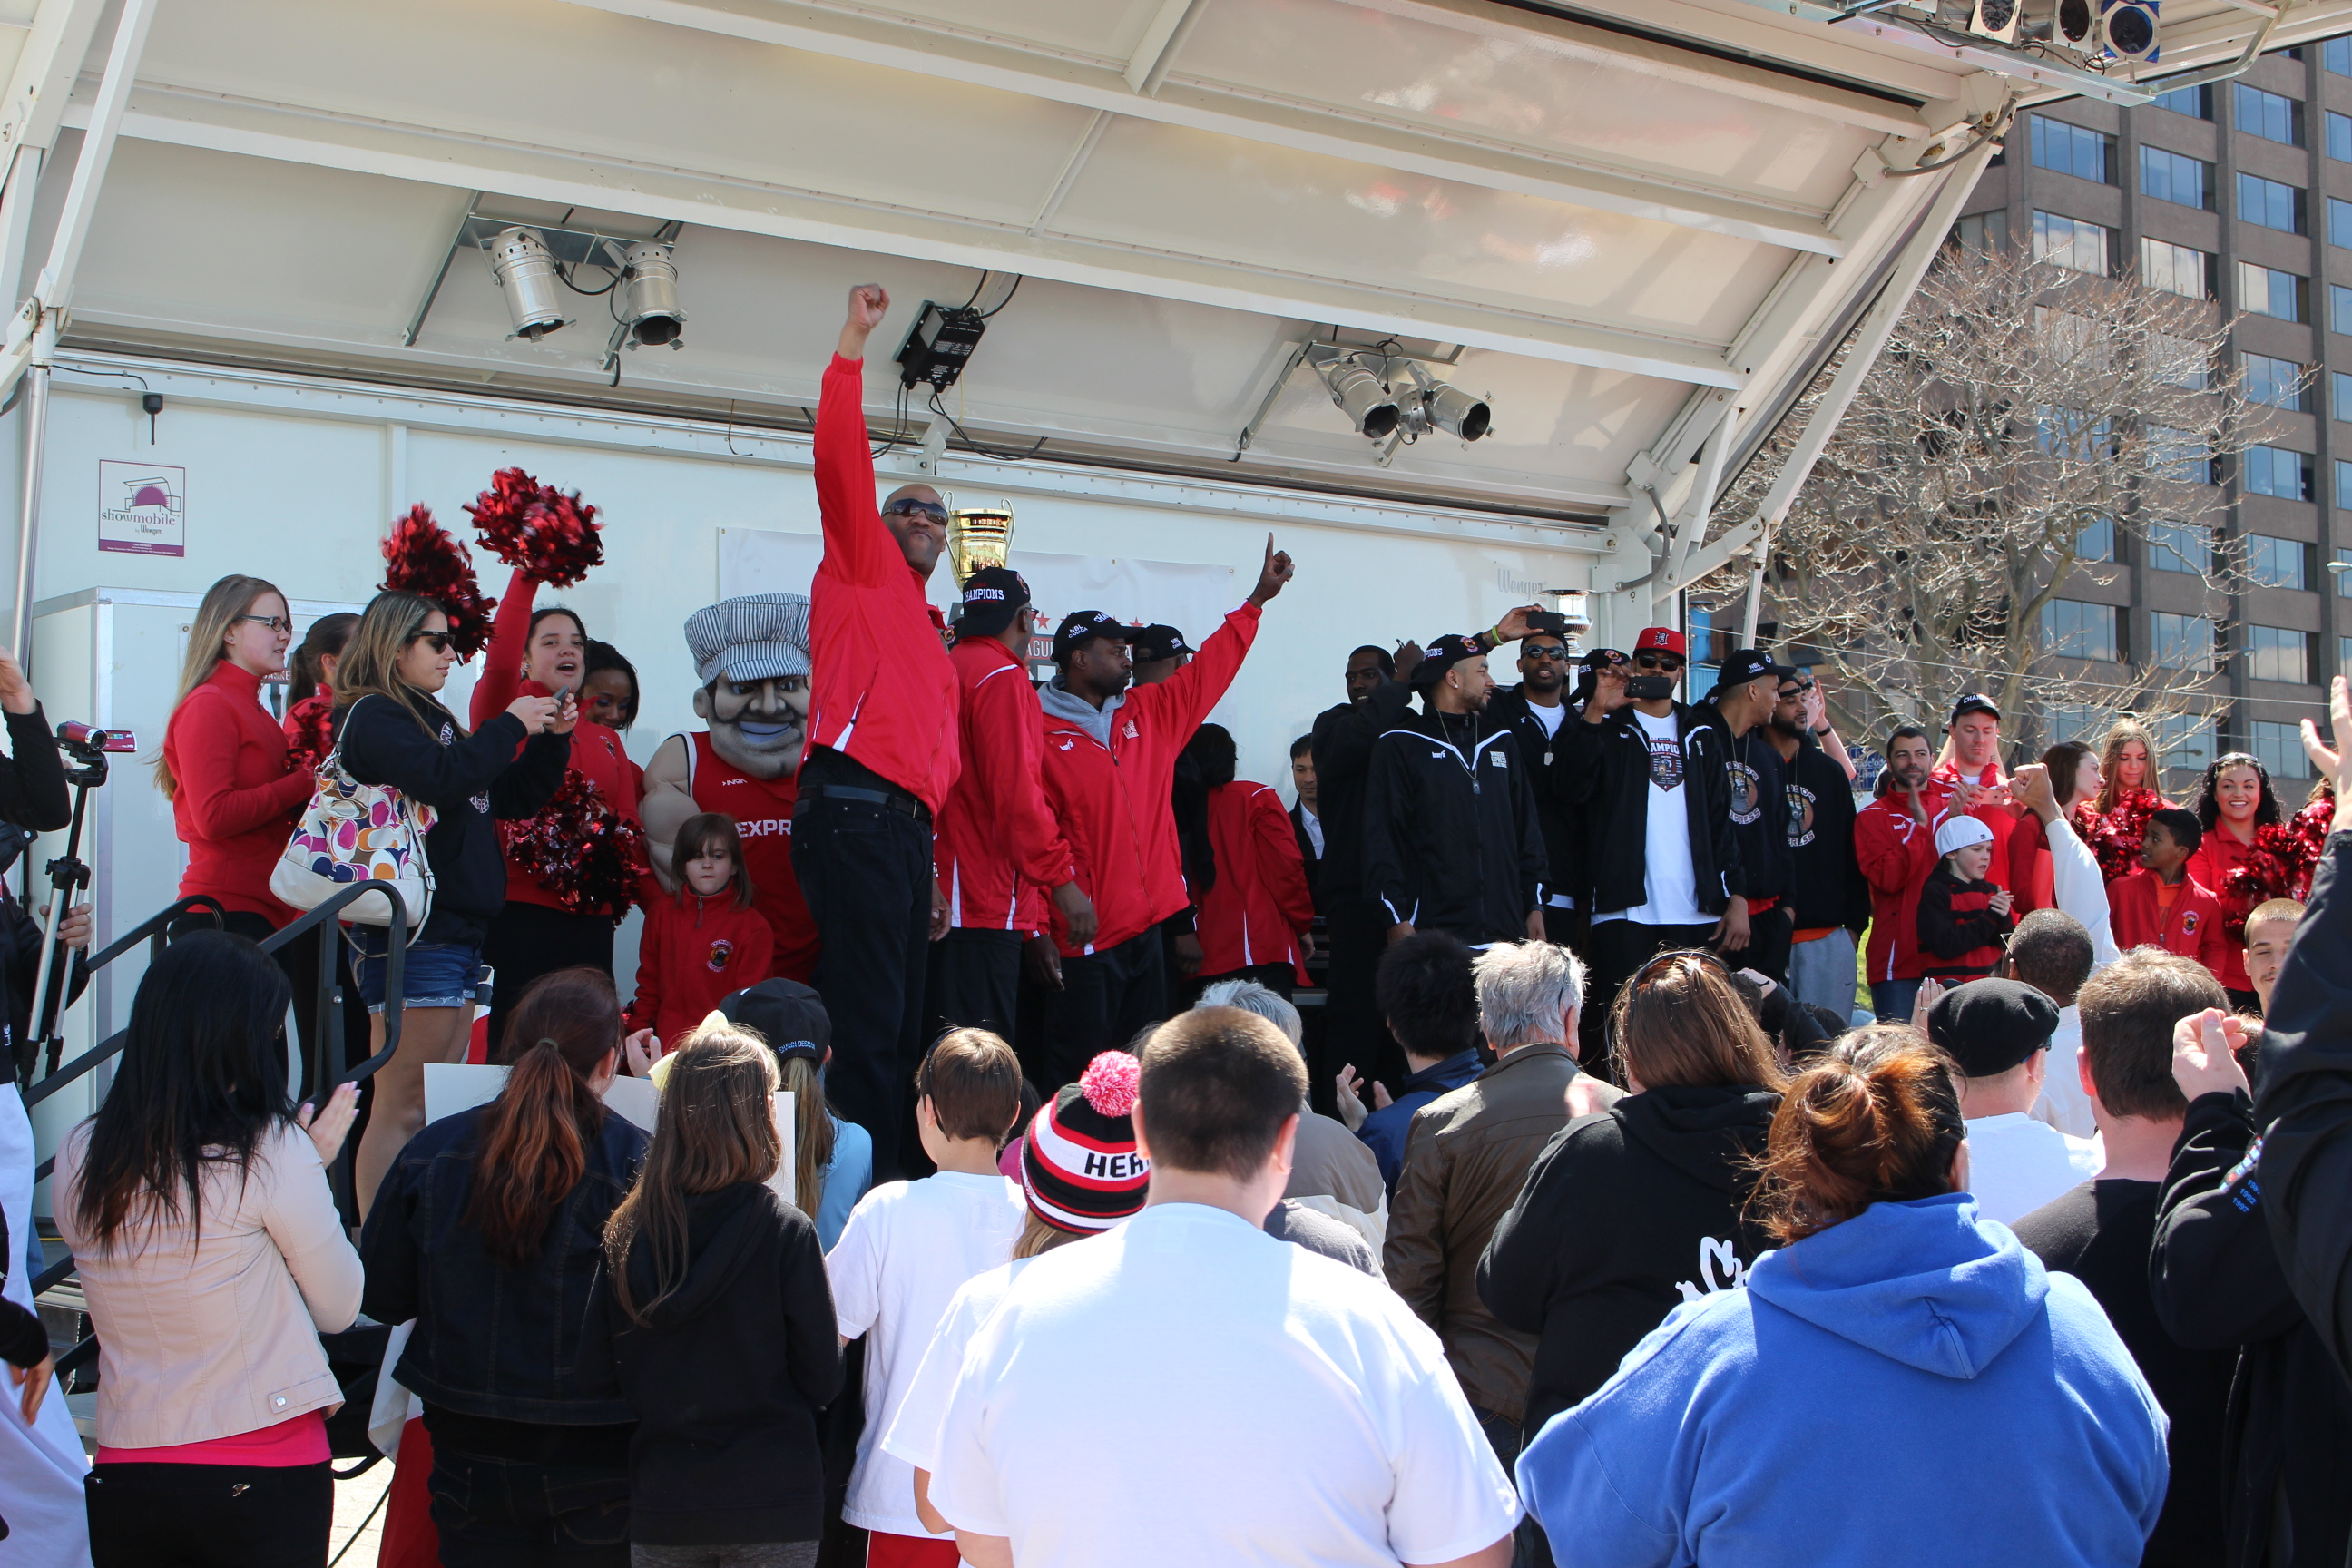 The Windsor Express NBL Canada Championship Parade on April 26, 2014. (Photo by Ricardo Veneza)